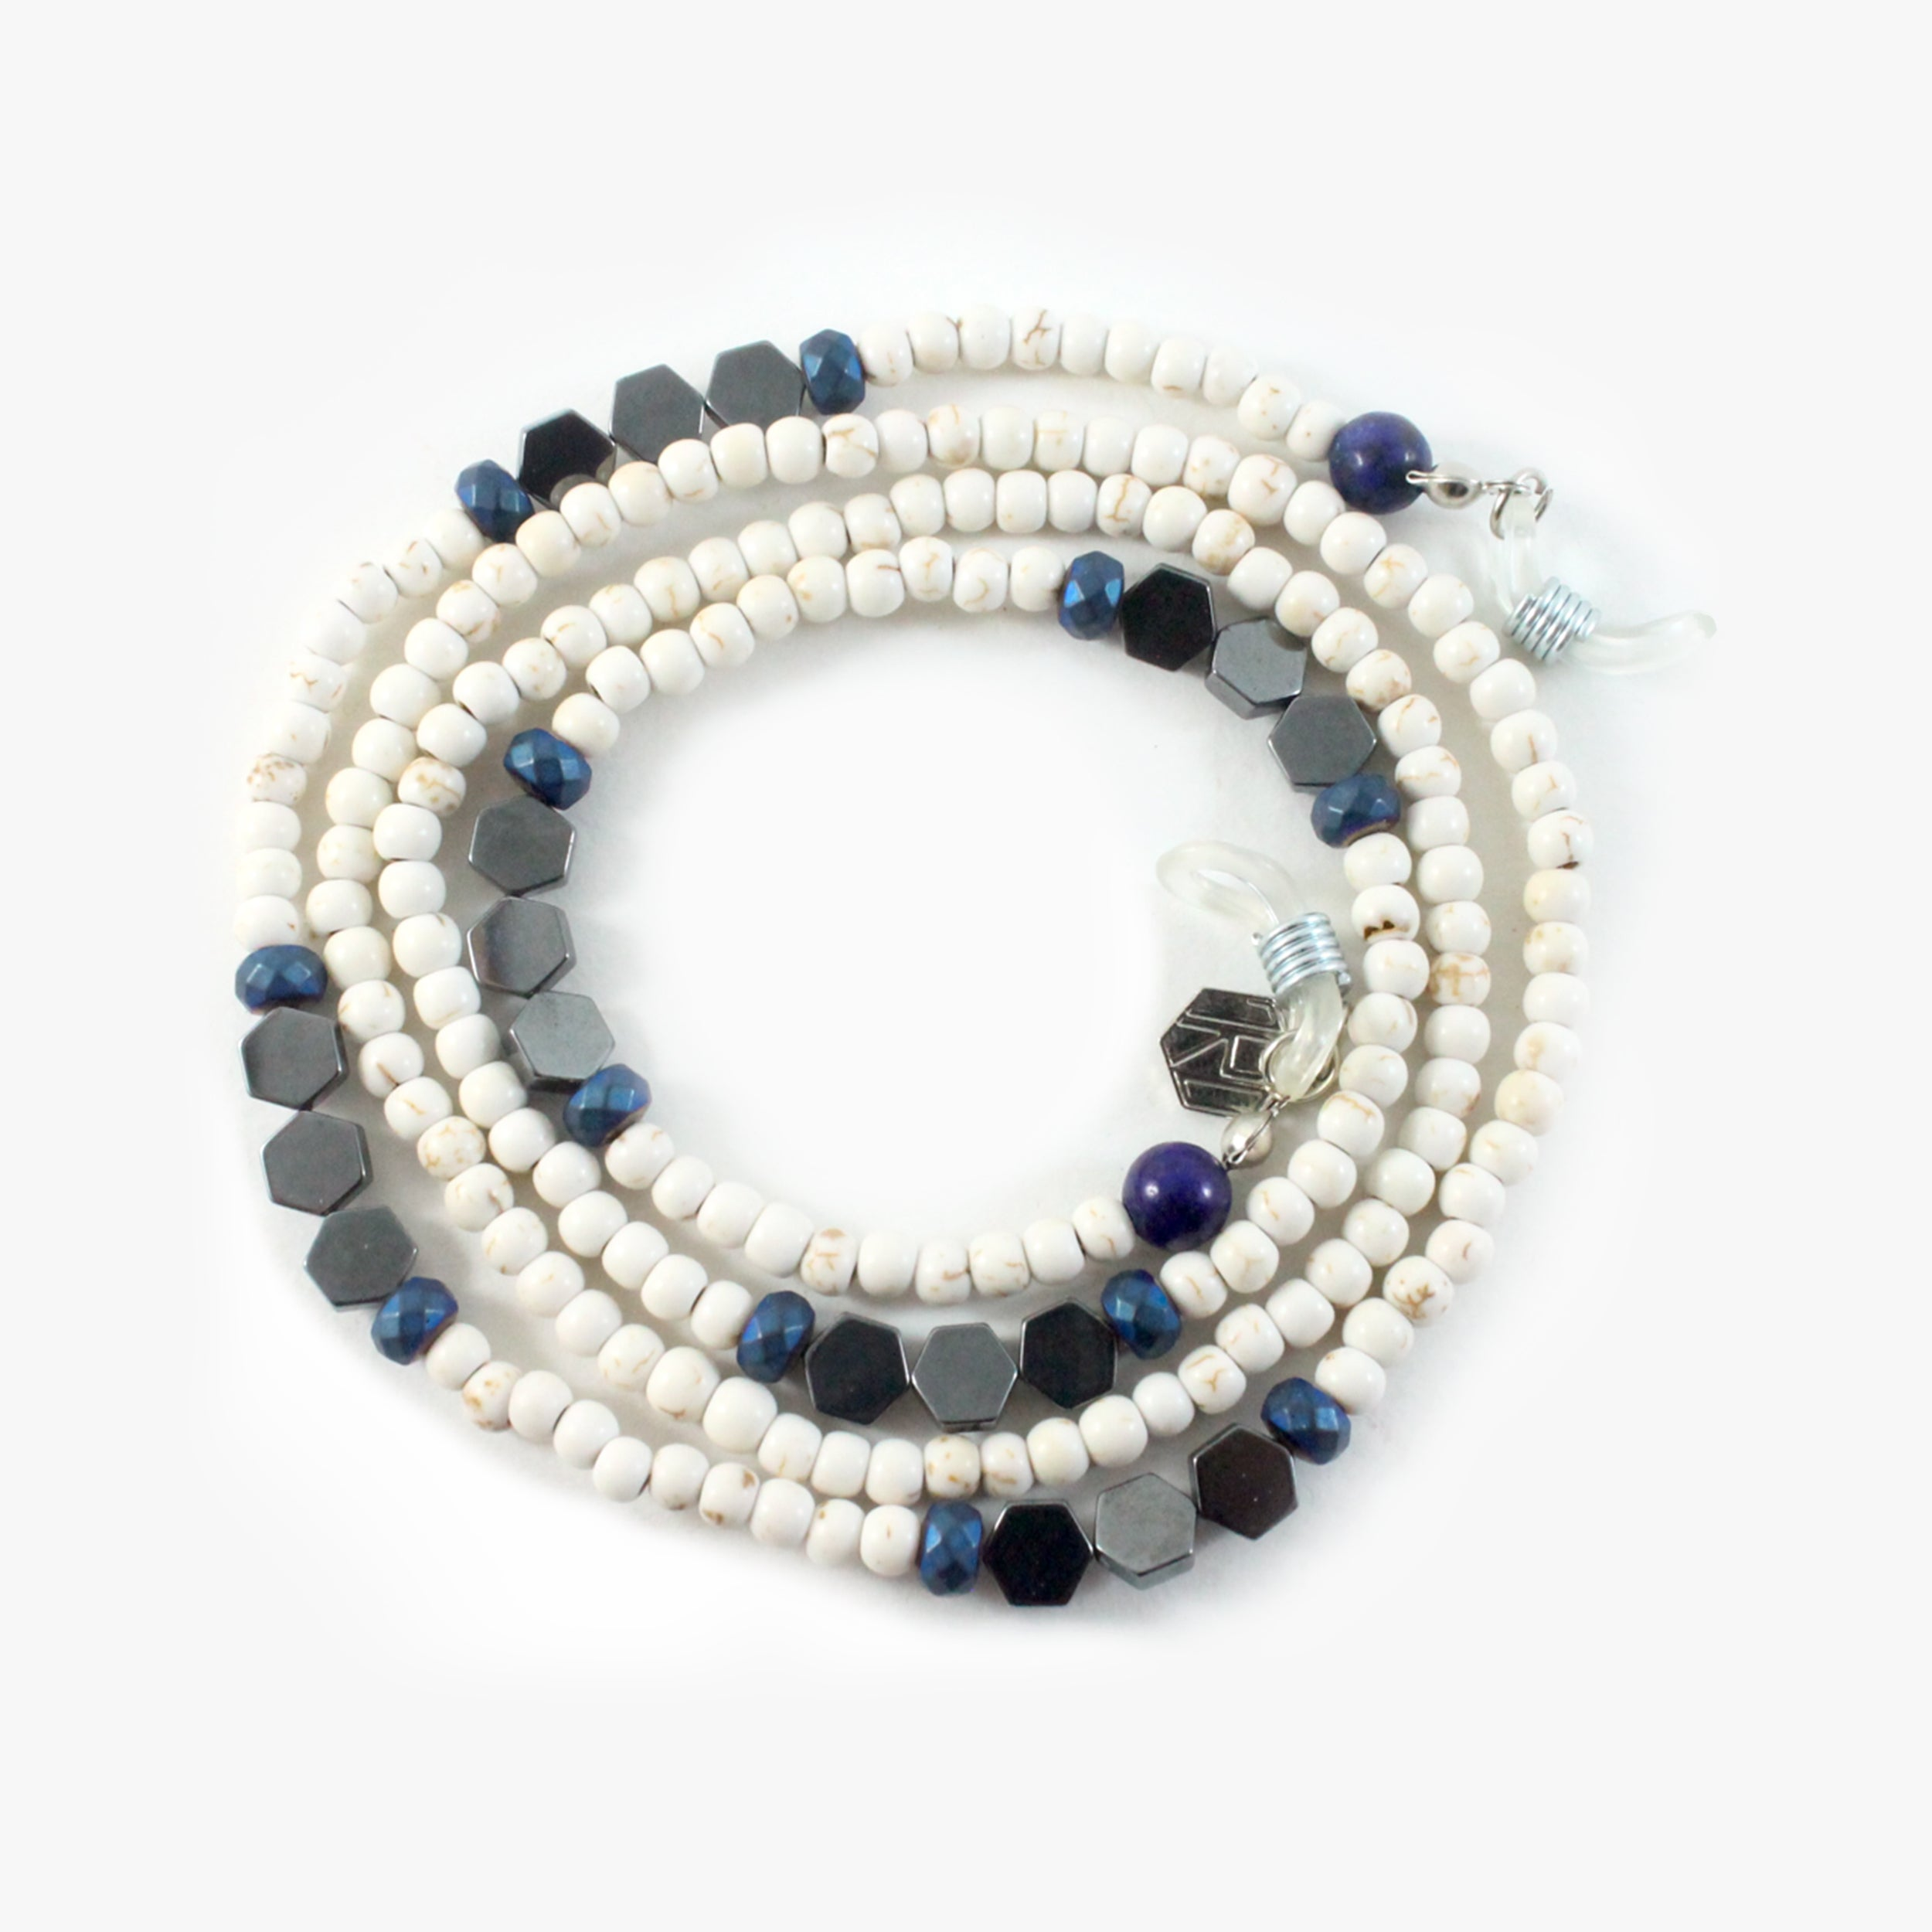 Howlite With Blue Crystals & 925 Sterling Silver - Eyewear Chain - BabMakkah Stores